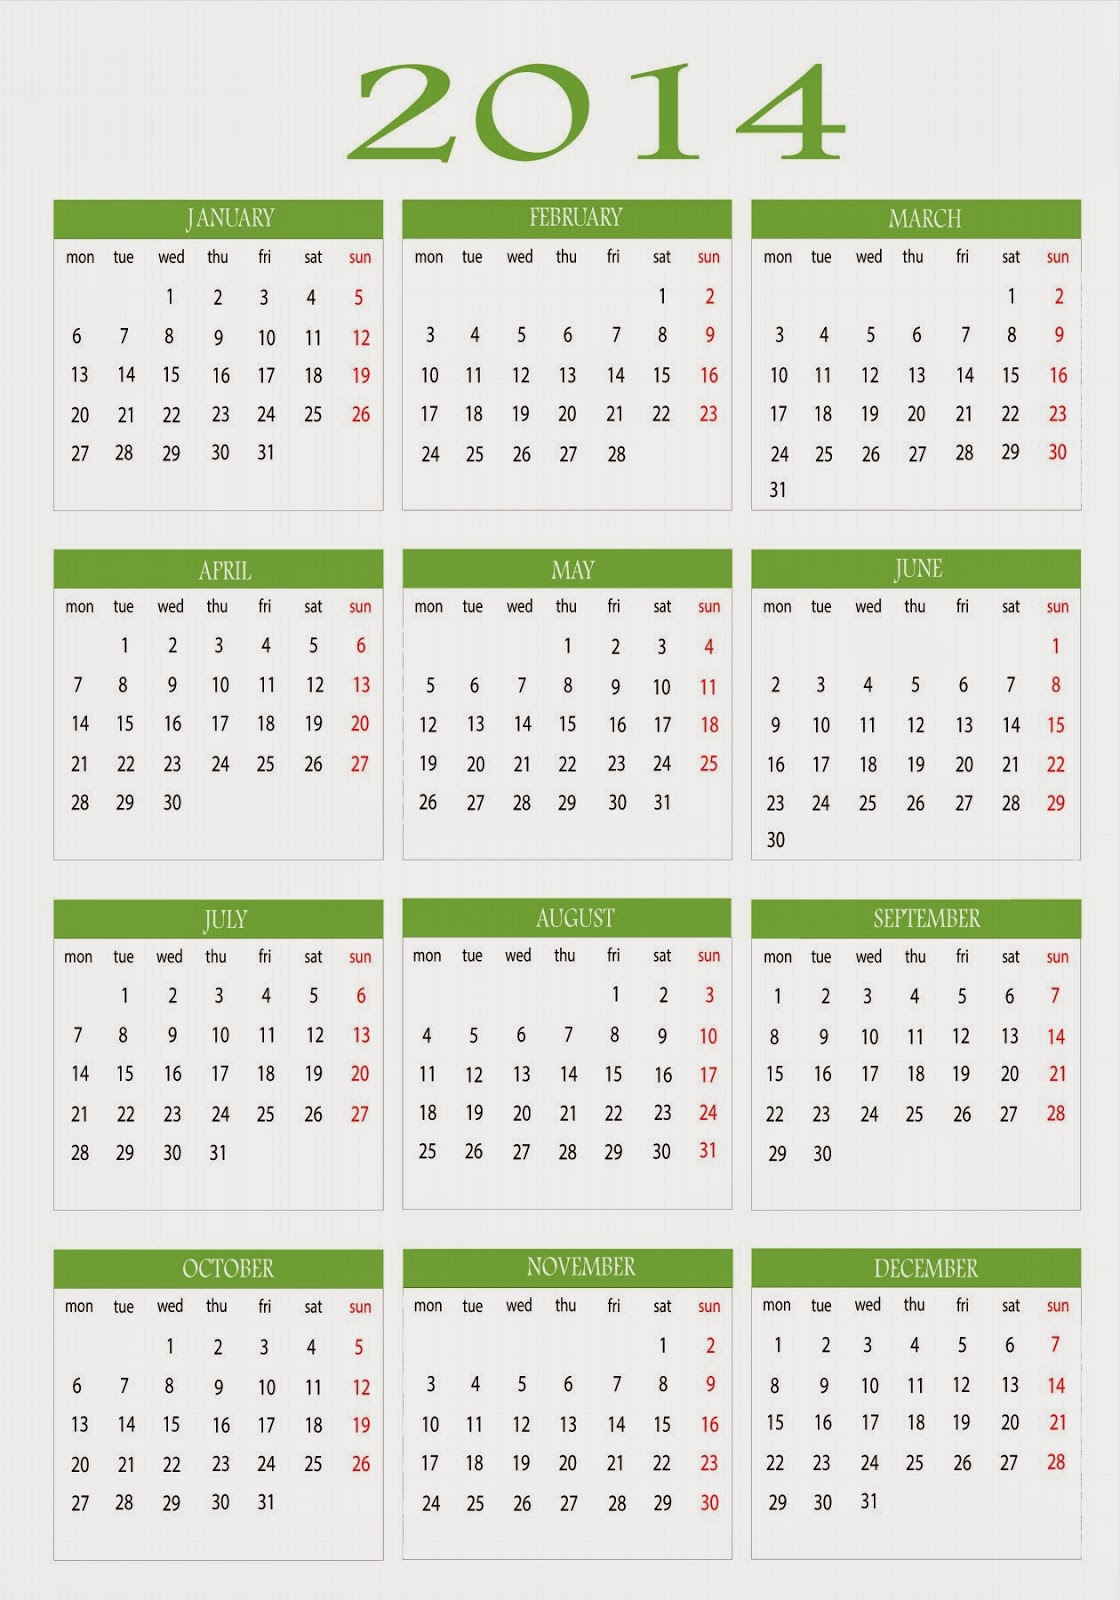 2014 happy new year calendar hd wallpapers and vectors